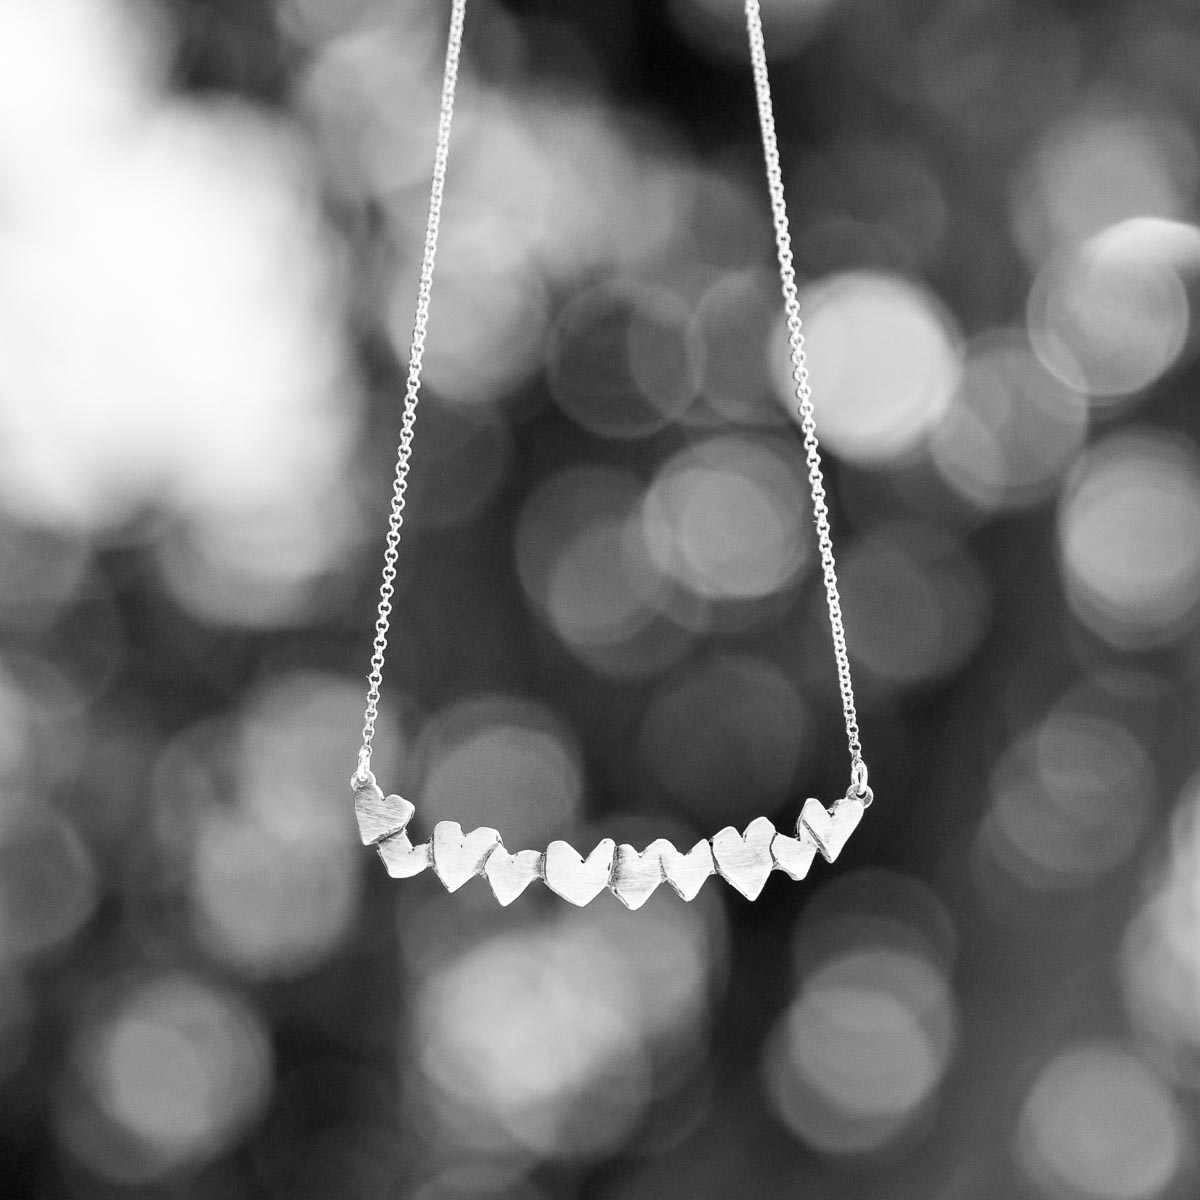 """Hearts is part of the """"Symbols"""" jewelry collection. Hearts jewelry piece is available in sterling silver. Design for Bead A Boo jewelry by Katerina Glinou."""